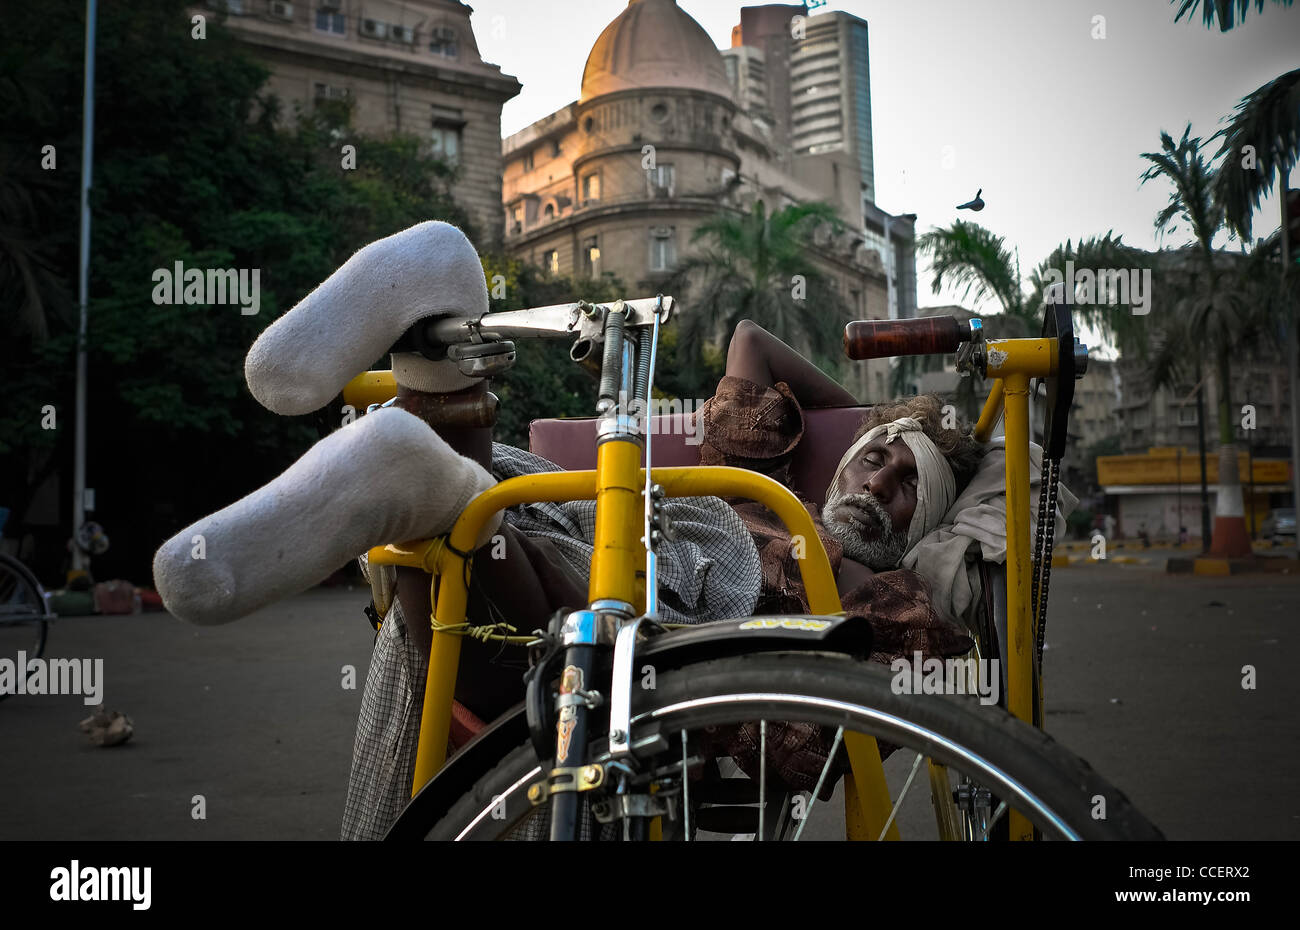 Untouchable and disabled Bombay., Truck accident. - Stock Image